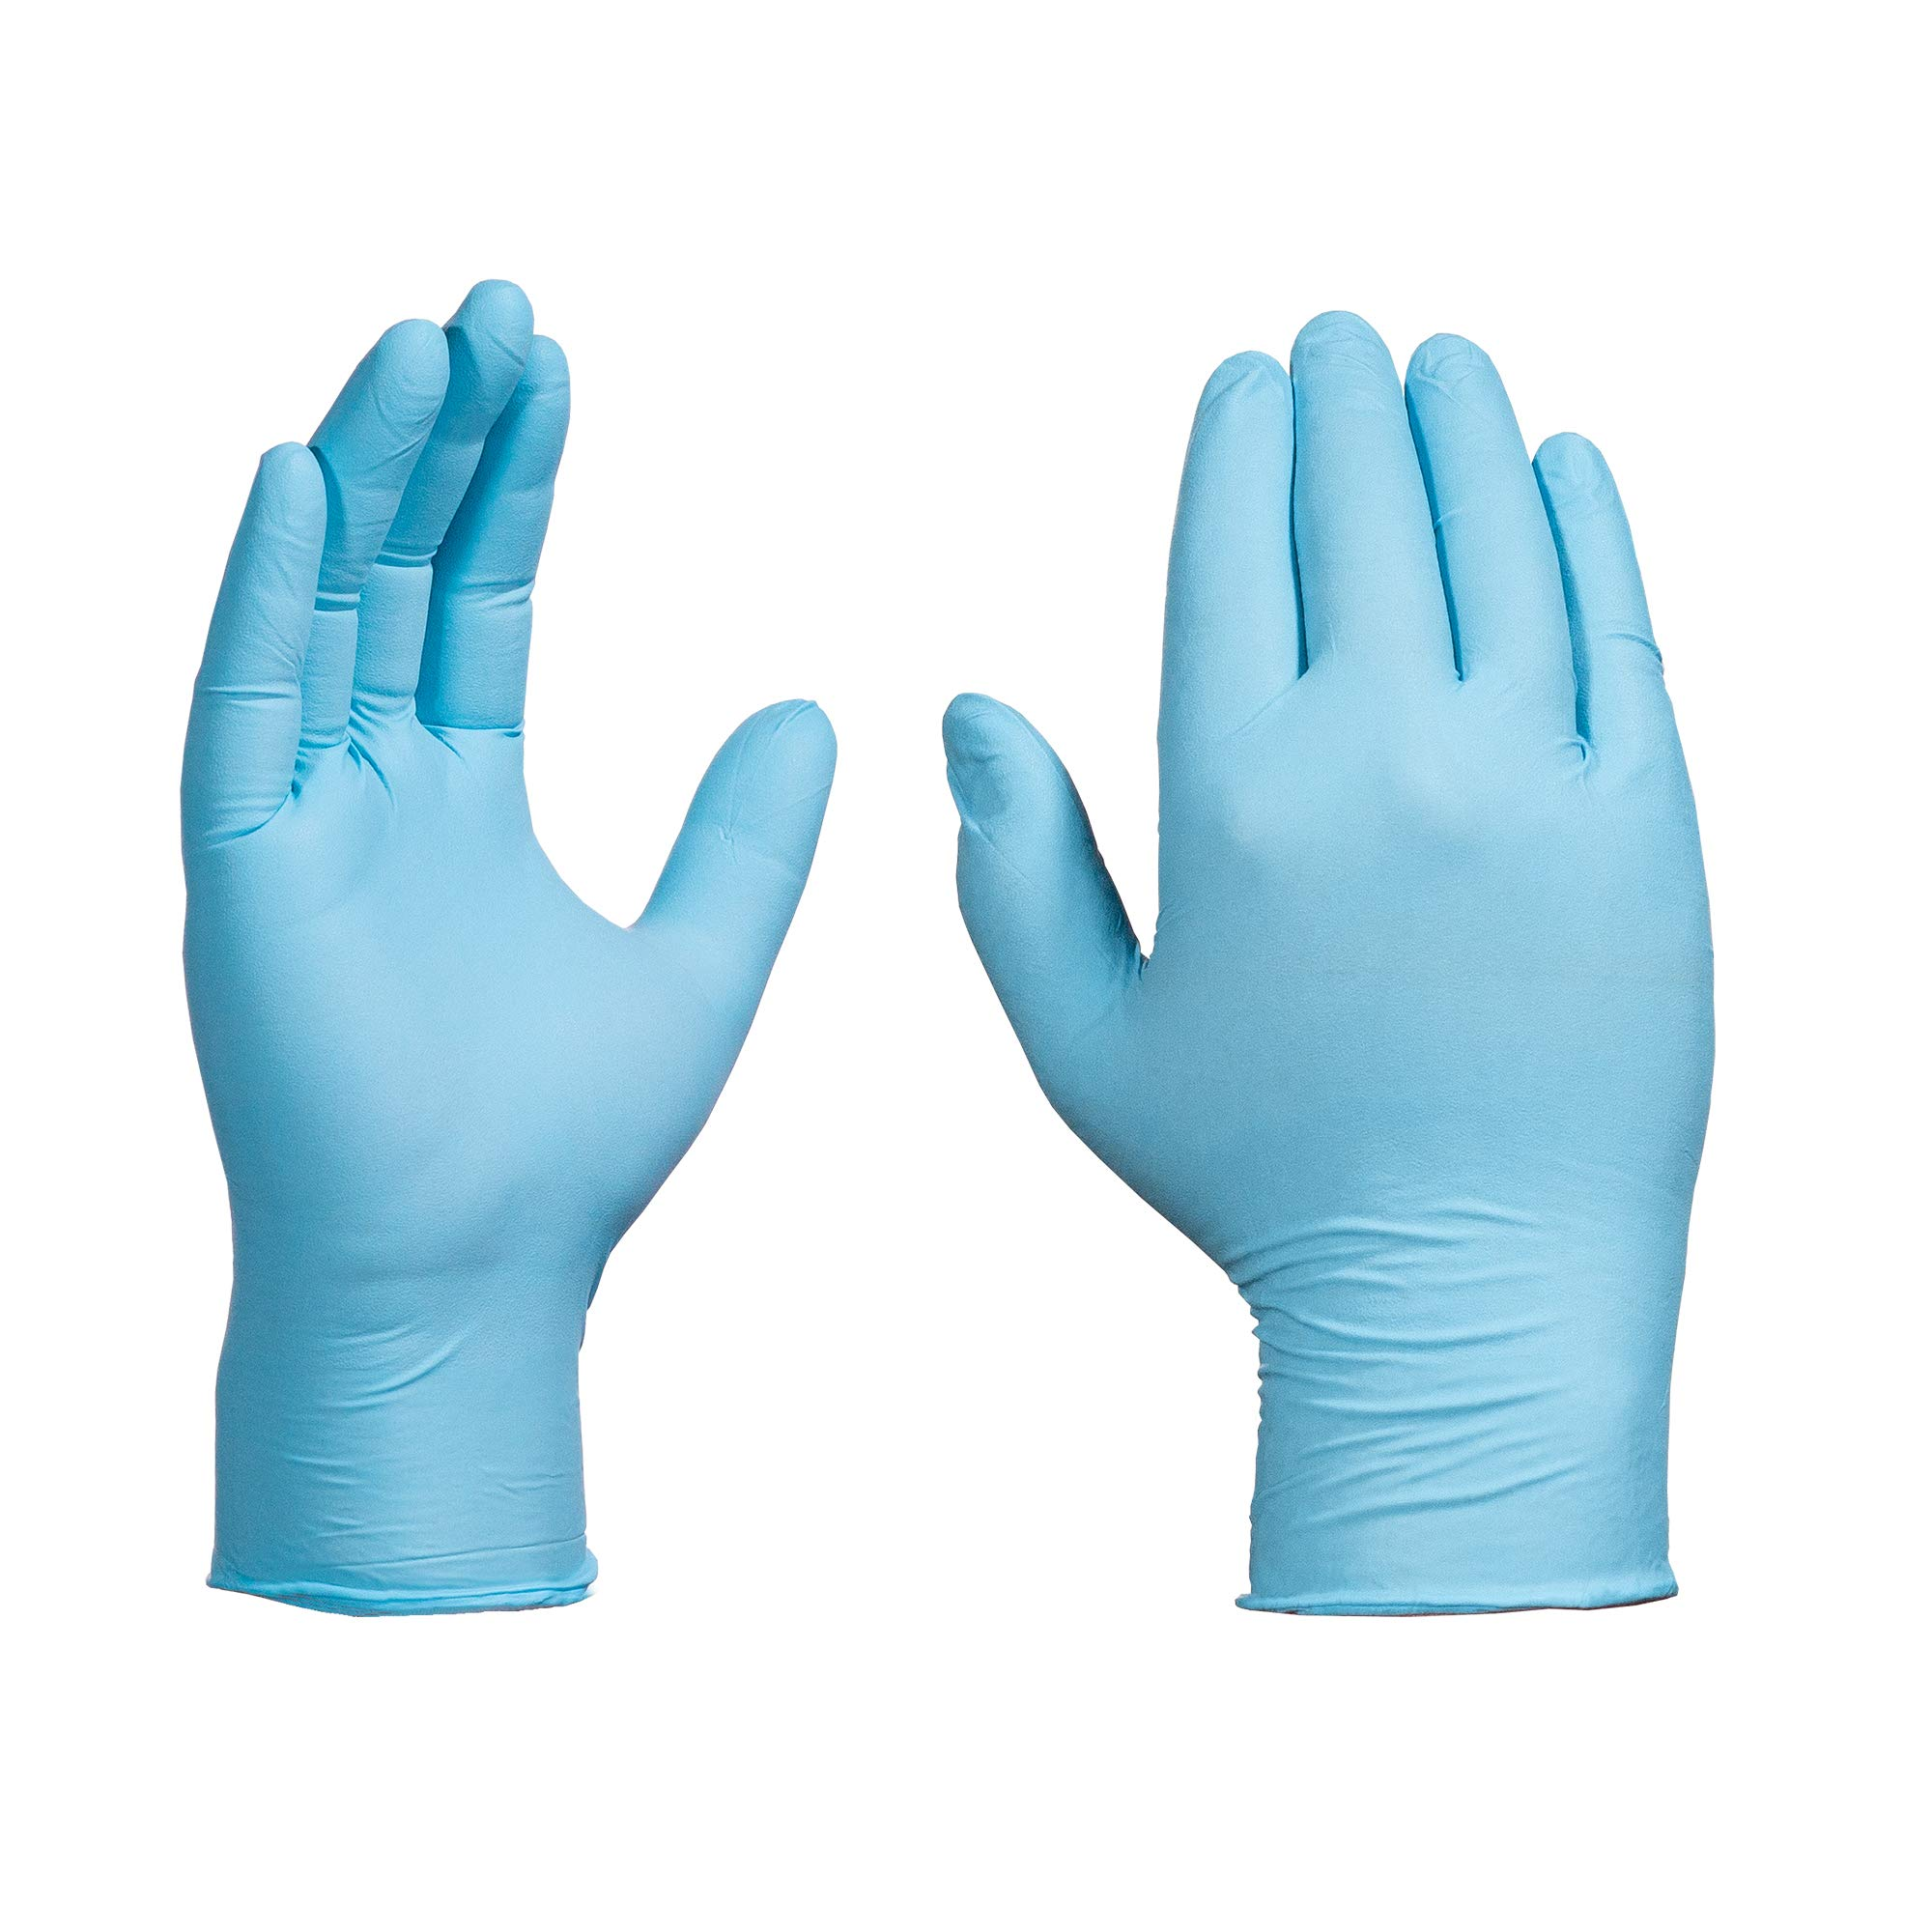 AMMEX Nitrile Disposable Gloves - Powdered, Industrial, 5 mil, XLarge, Blue (Case of 1000)